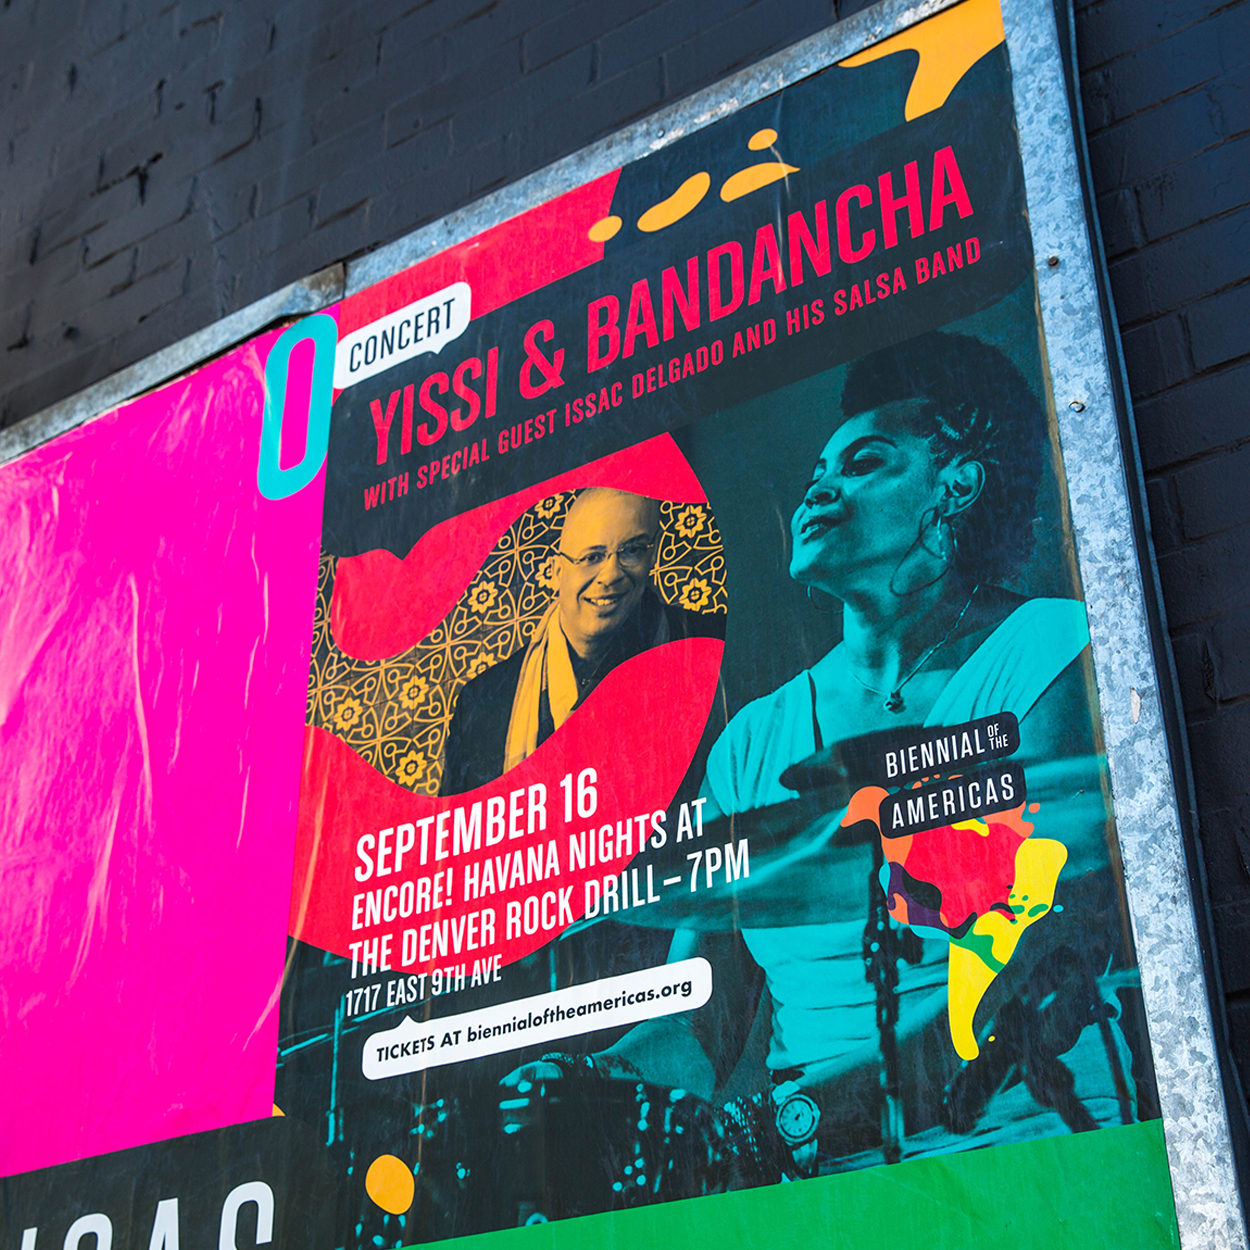 Outdoor shot of a concert poster for Yissi & Bandancha.